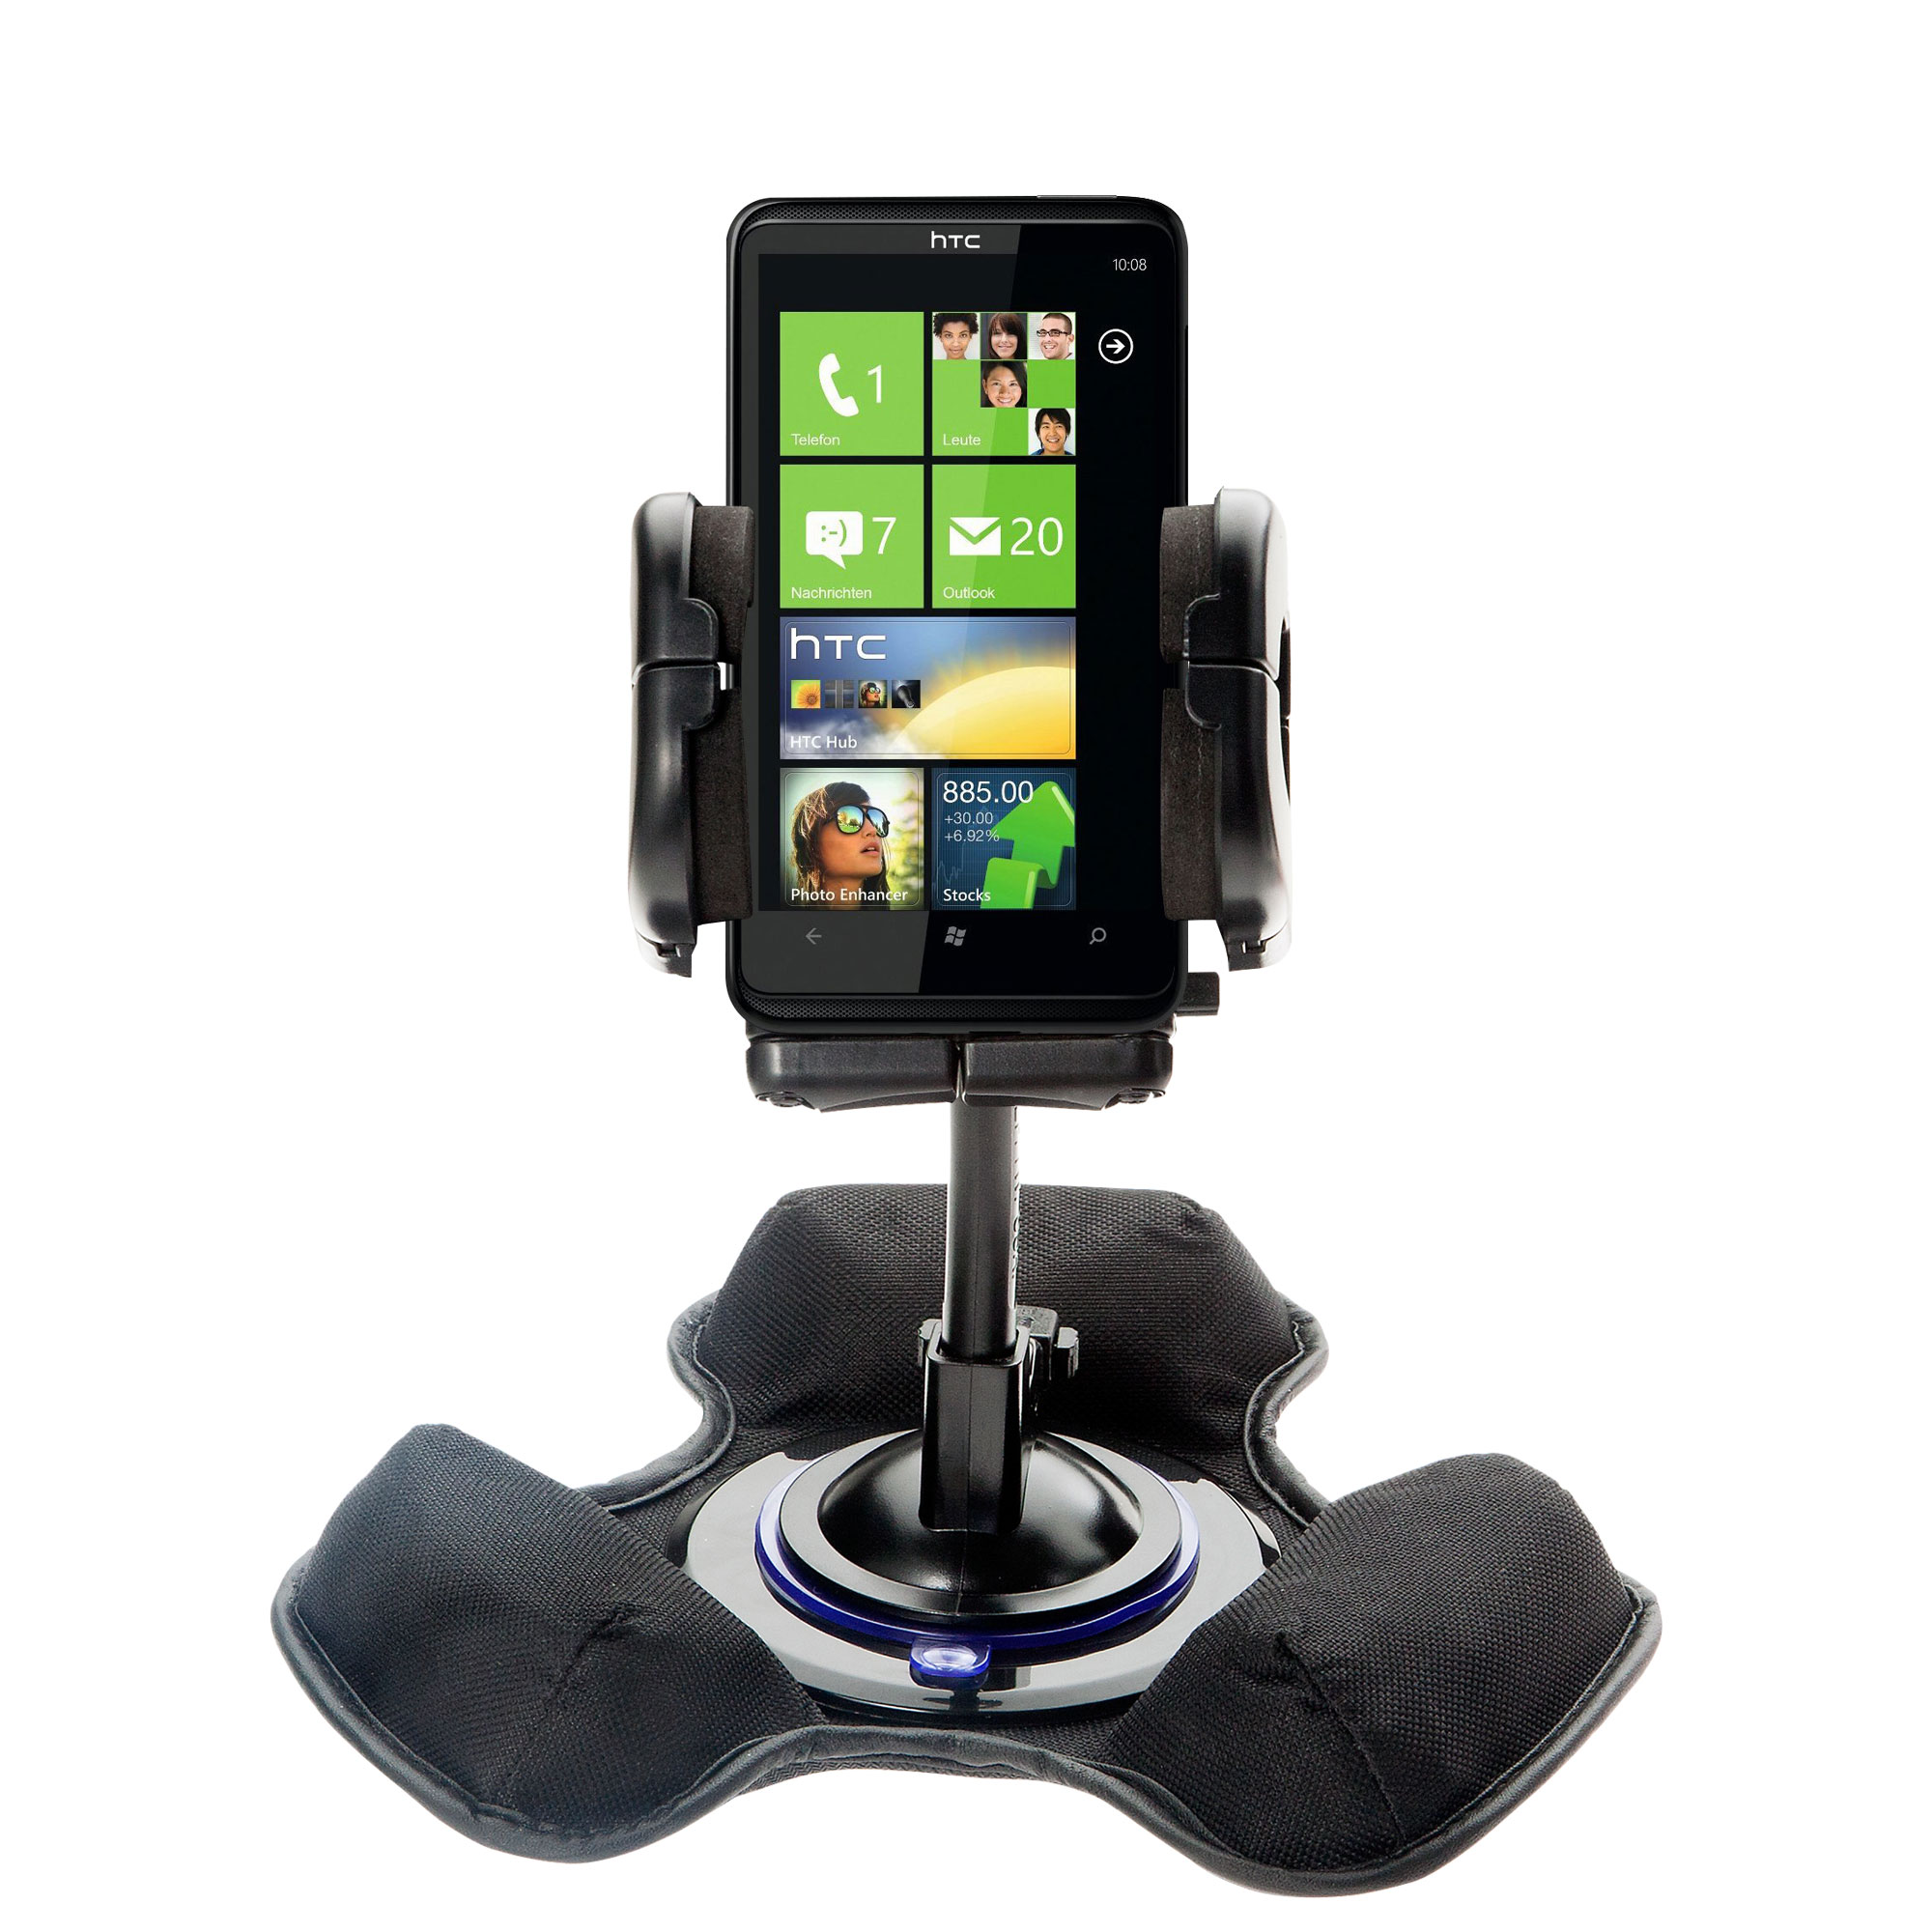 Car / Truck Vehicle Holder Mounting System for HTC HD7 Includes Unique Flexible Windshield Suction and Universal Dashboard Mount Options